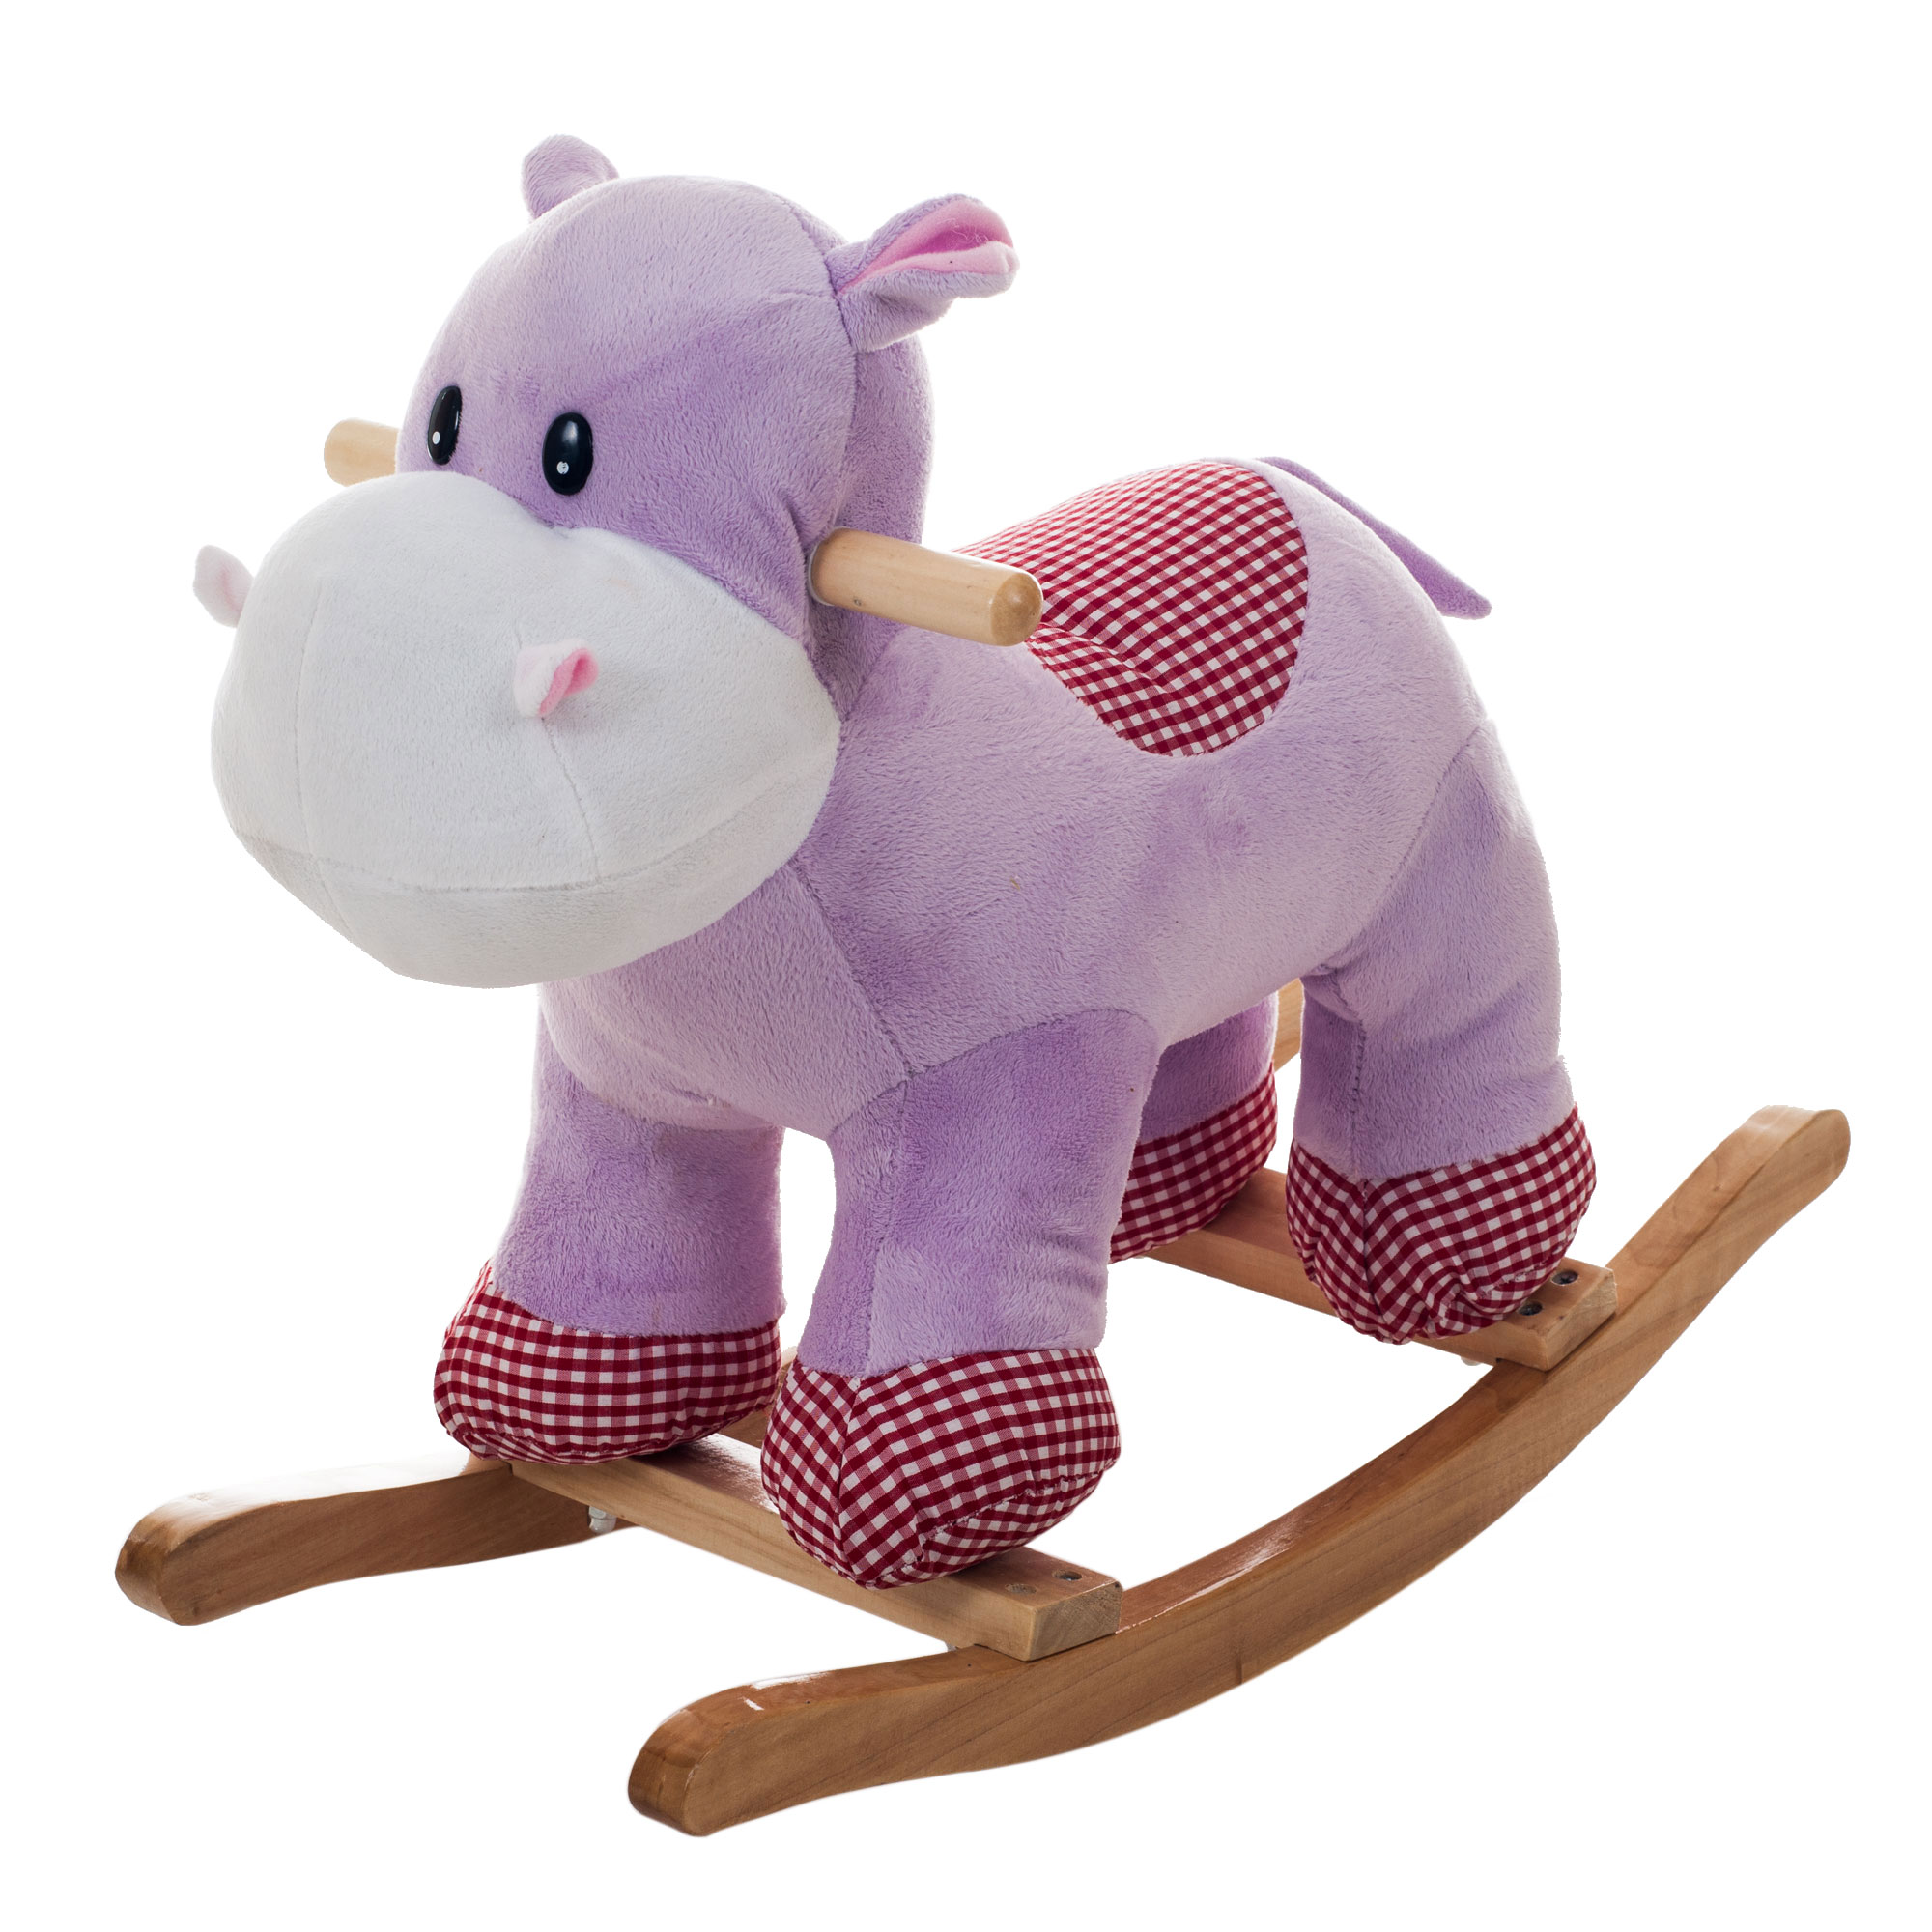 Henrietta the Rocking Hippo Ride On Rocking Horse Animal Toy by Happy Trails